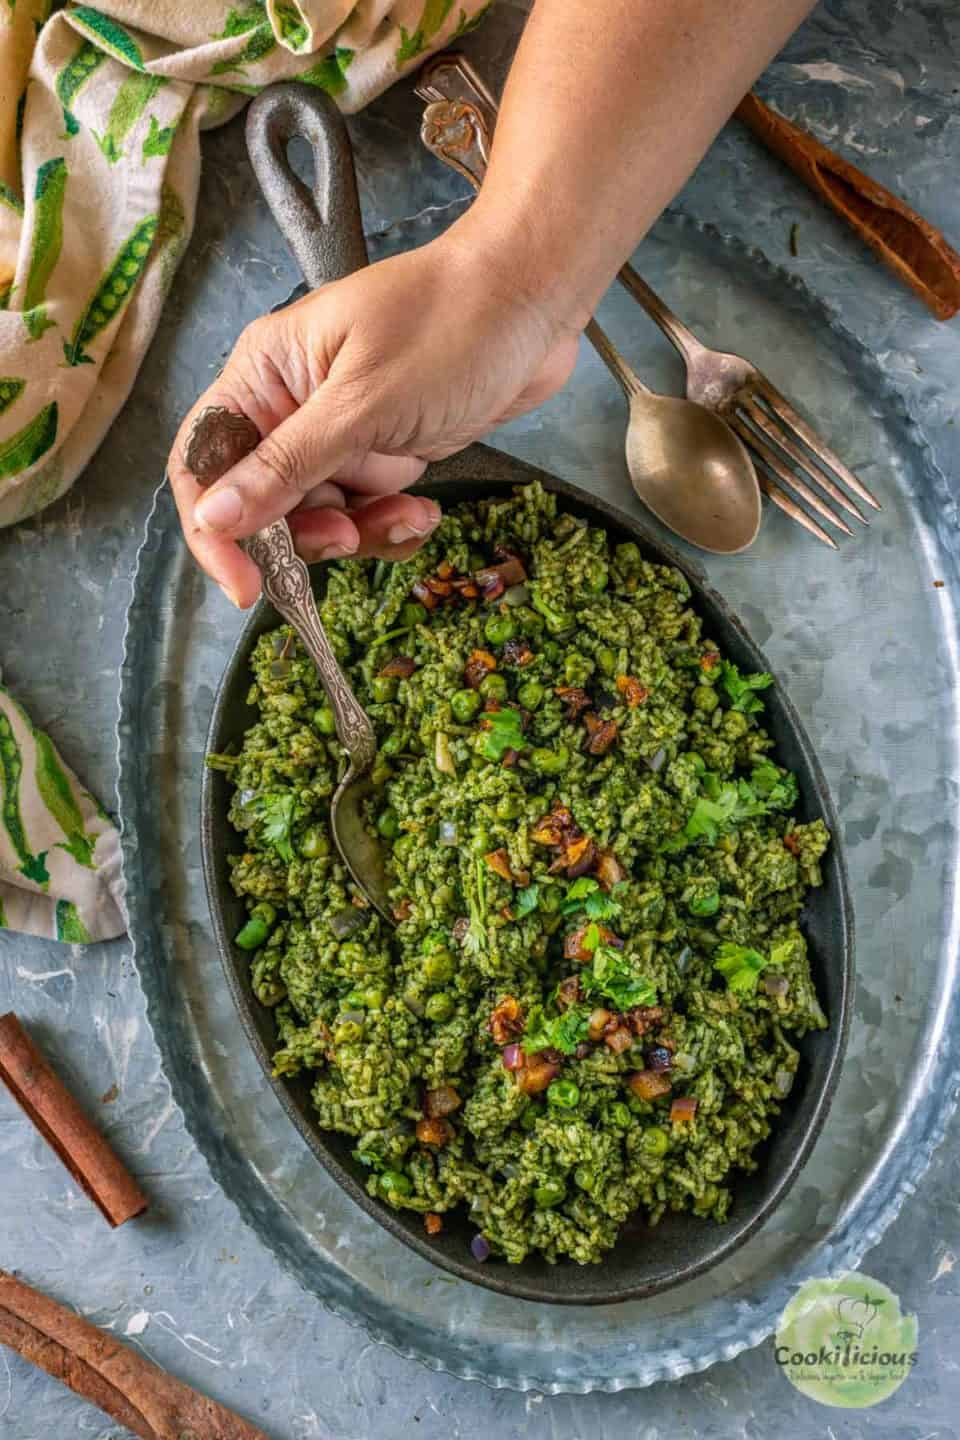 a hand digging into a plate of Spinach Garlic Rice with a spoon